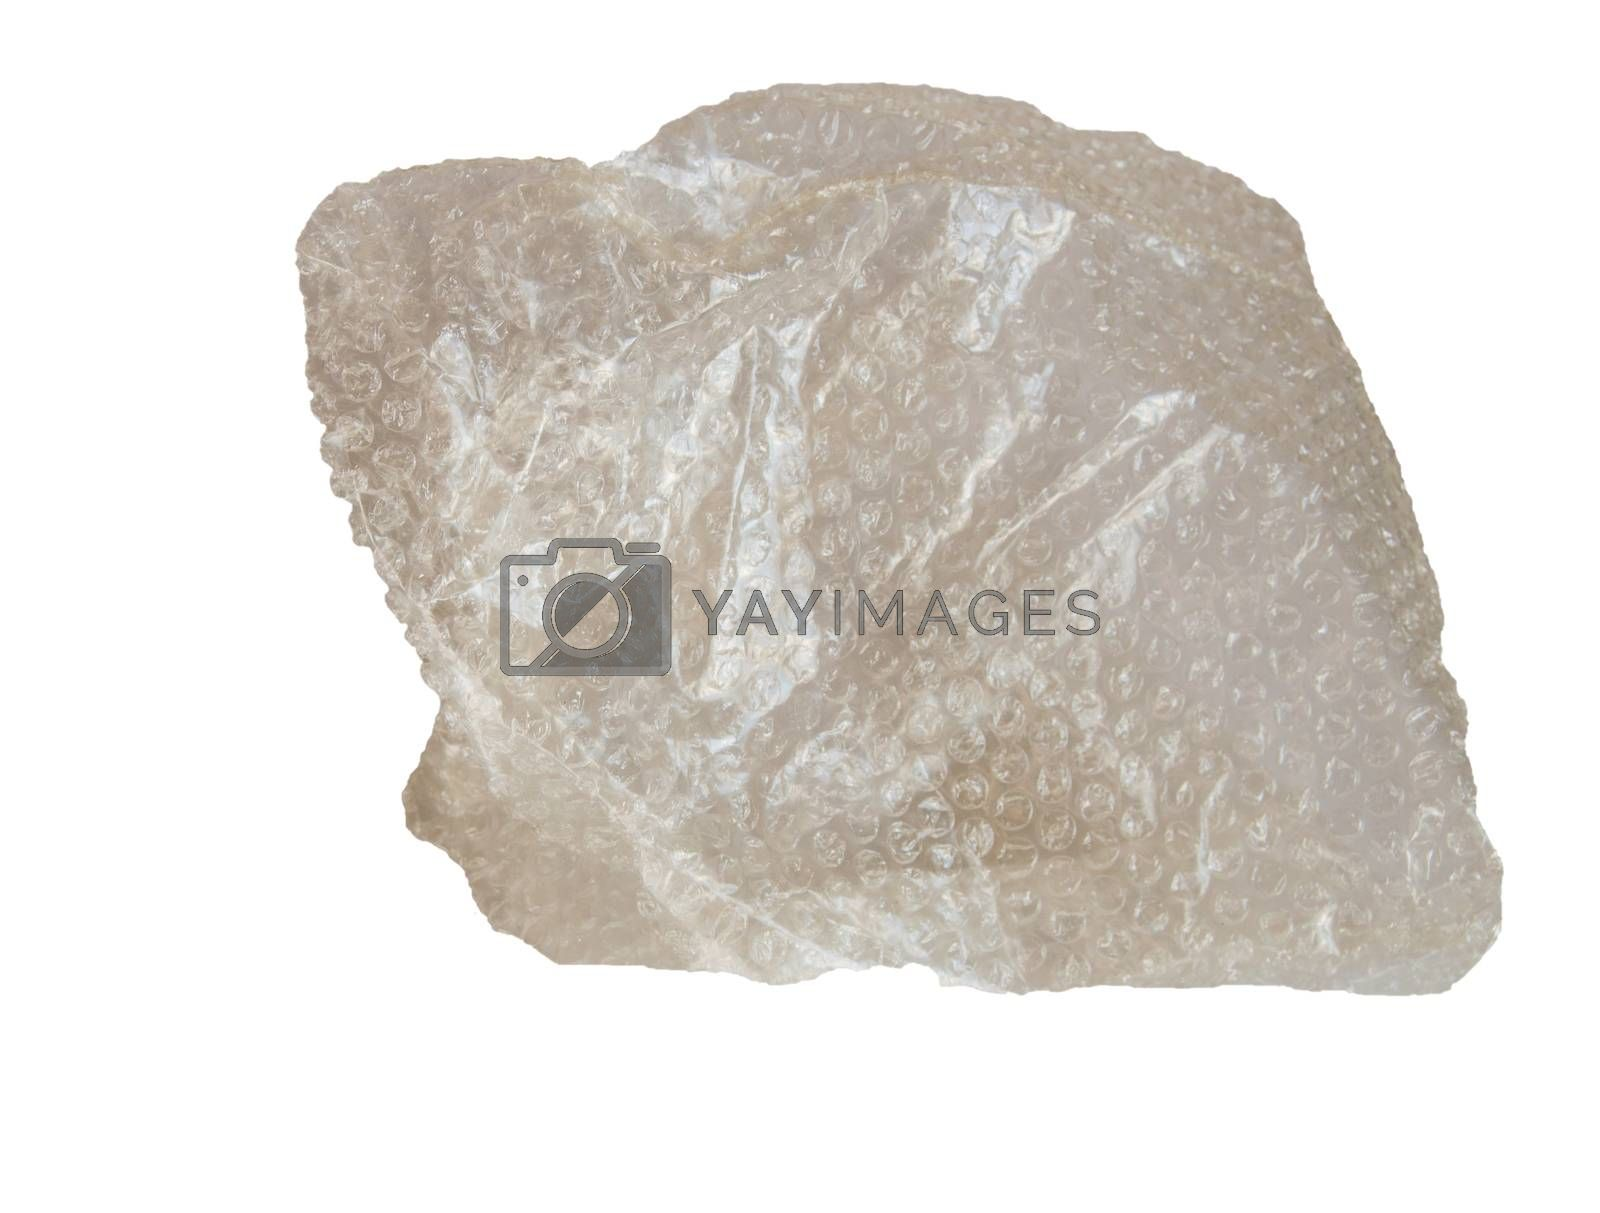 A piece of bubble-bursting plastic protective cellophane for packaging, isolated on a white background.